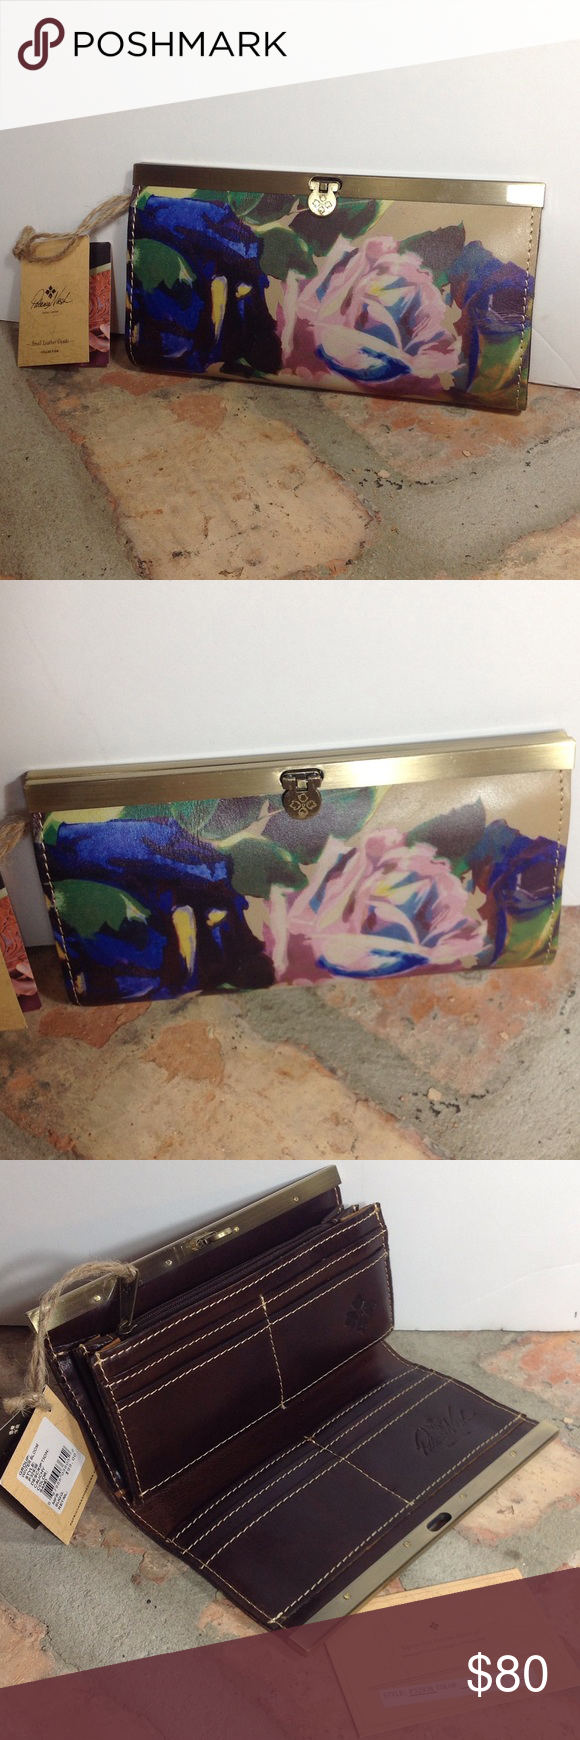 New! Patricia Nash Winter Bloom Cauchy Wallet NWT Patricia Nash wallet has 10 compartments for cards. Zip closure coin pocket. 5 inside slots. Very spacious and classy wallet.Color referred to as Sand..dark brown interior. Turn lock closure. Patricia Nash Bags Wallets